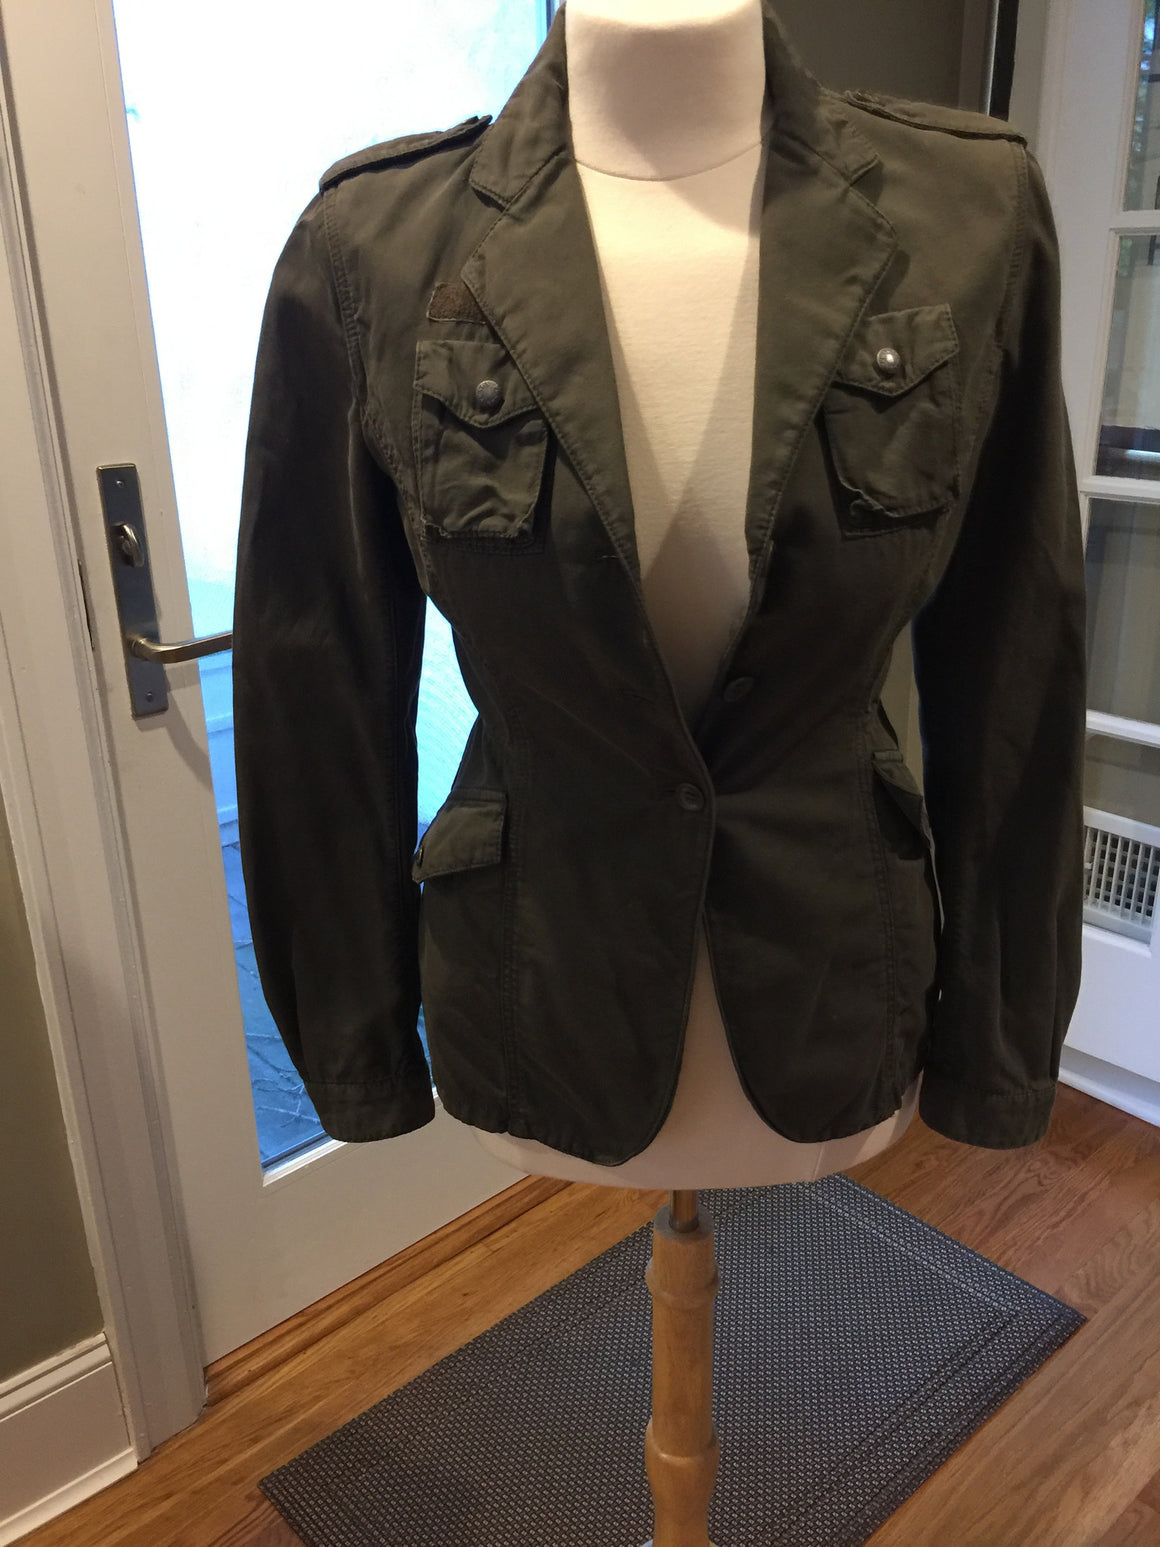 Prada Khaki Blazer - New York Authentic Designer - Prada